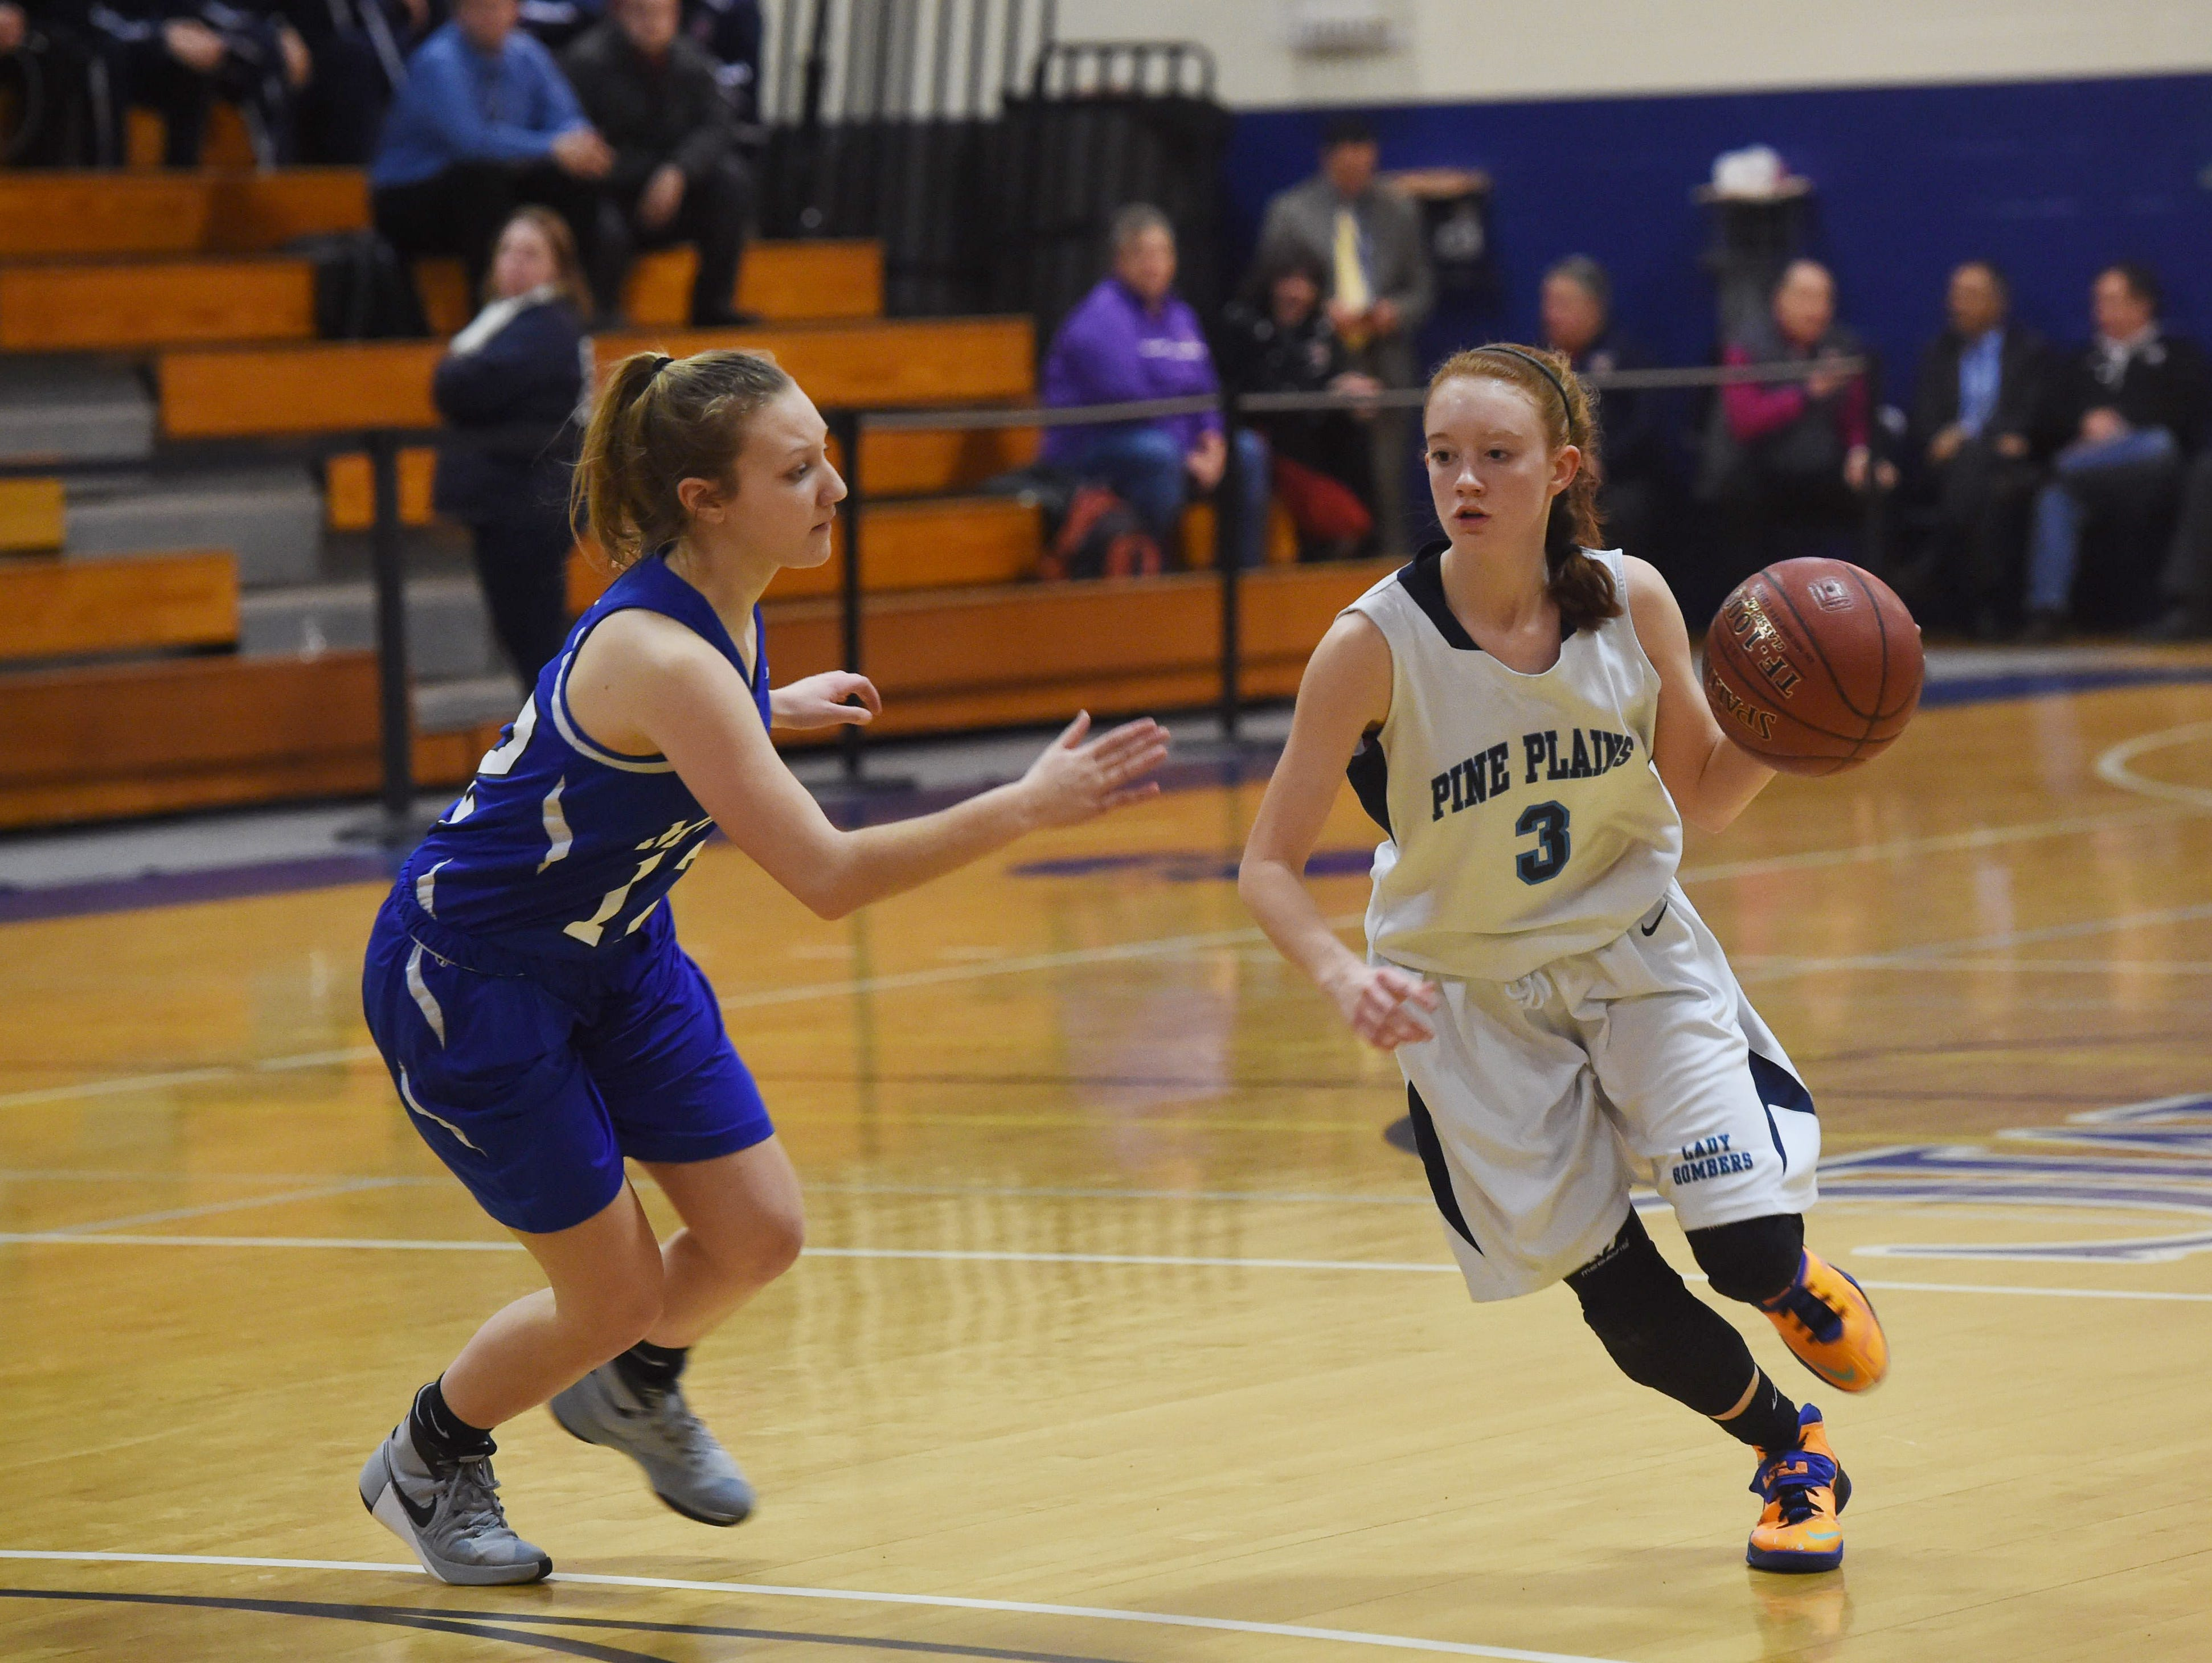 Pine Plains' Frances Snyder, right, takes the ball down the court during Friday's Section 9 championship game against Millbrook at Mount Saint Mary College in Newburgh.